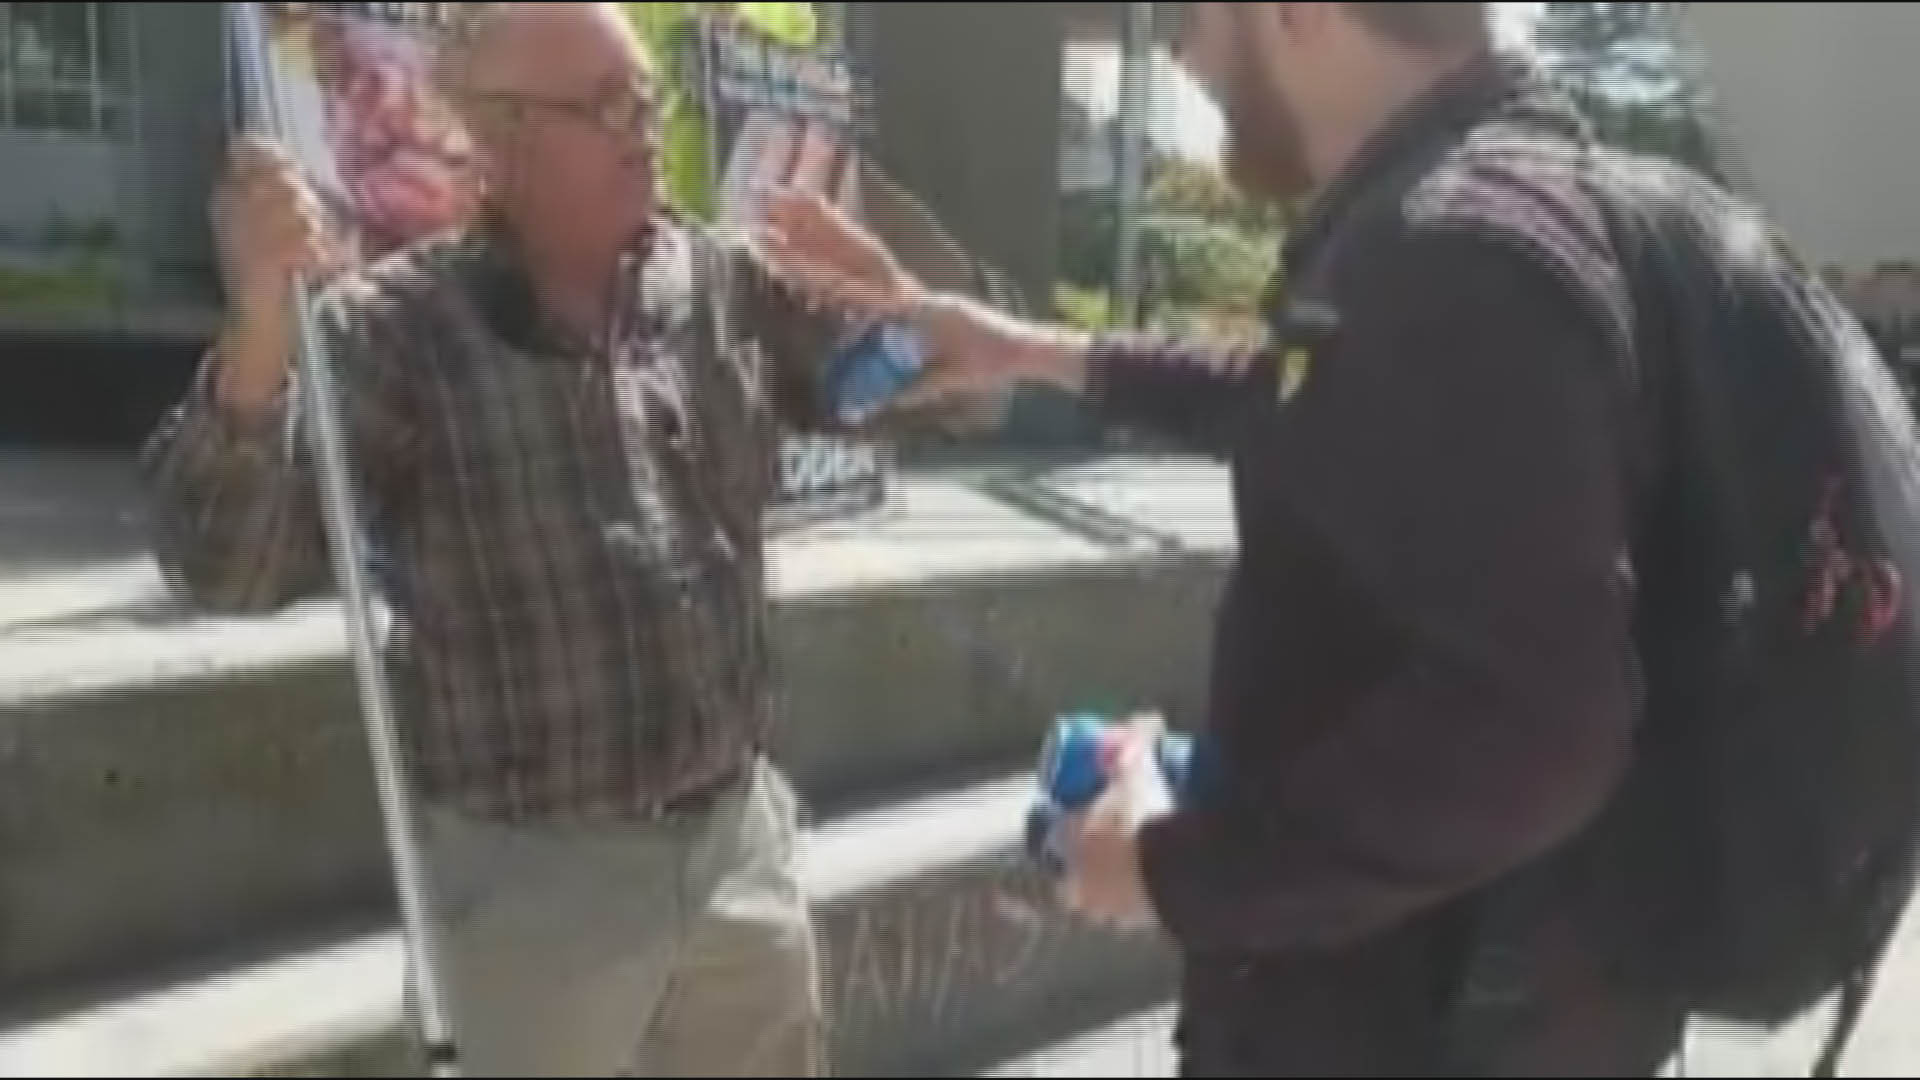 VIDEO: San Francisco State student attempts to quench protester's